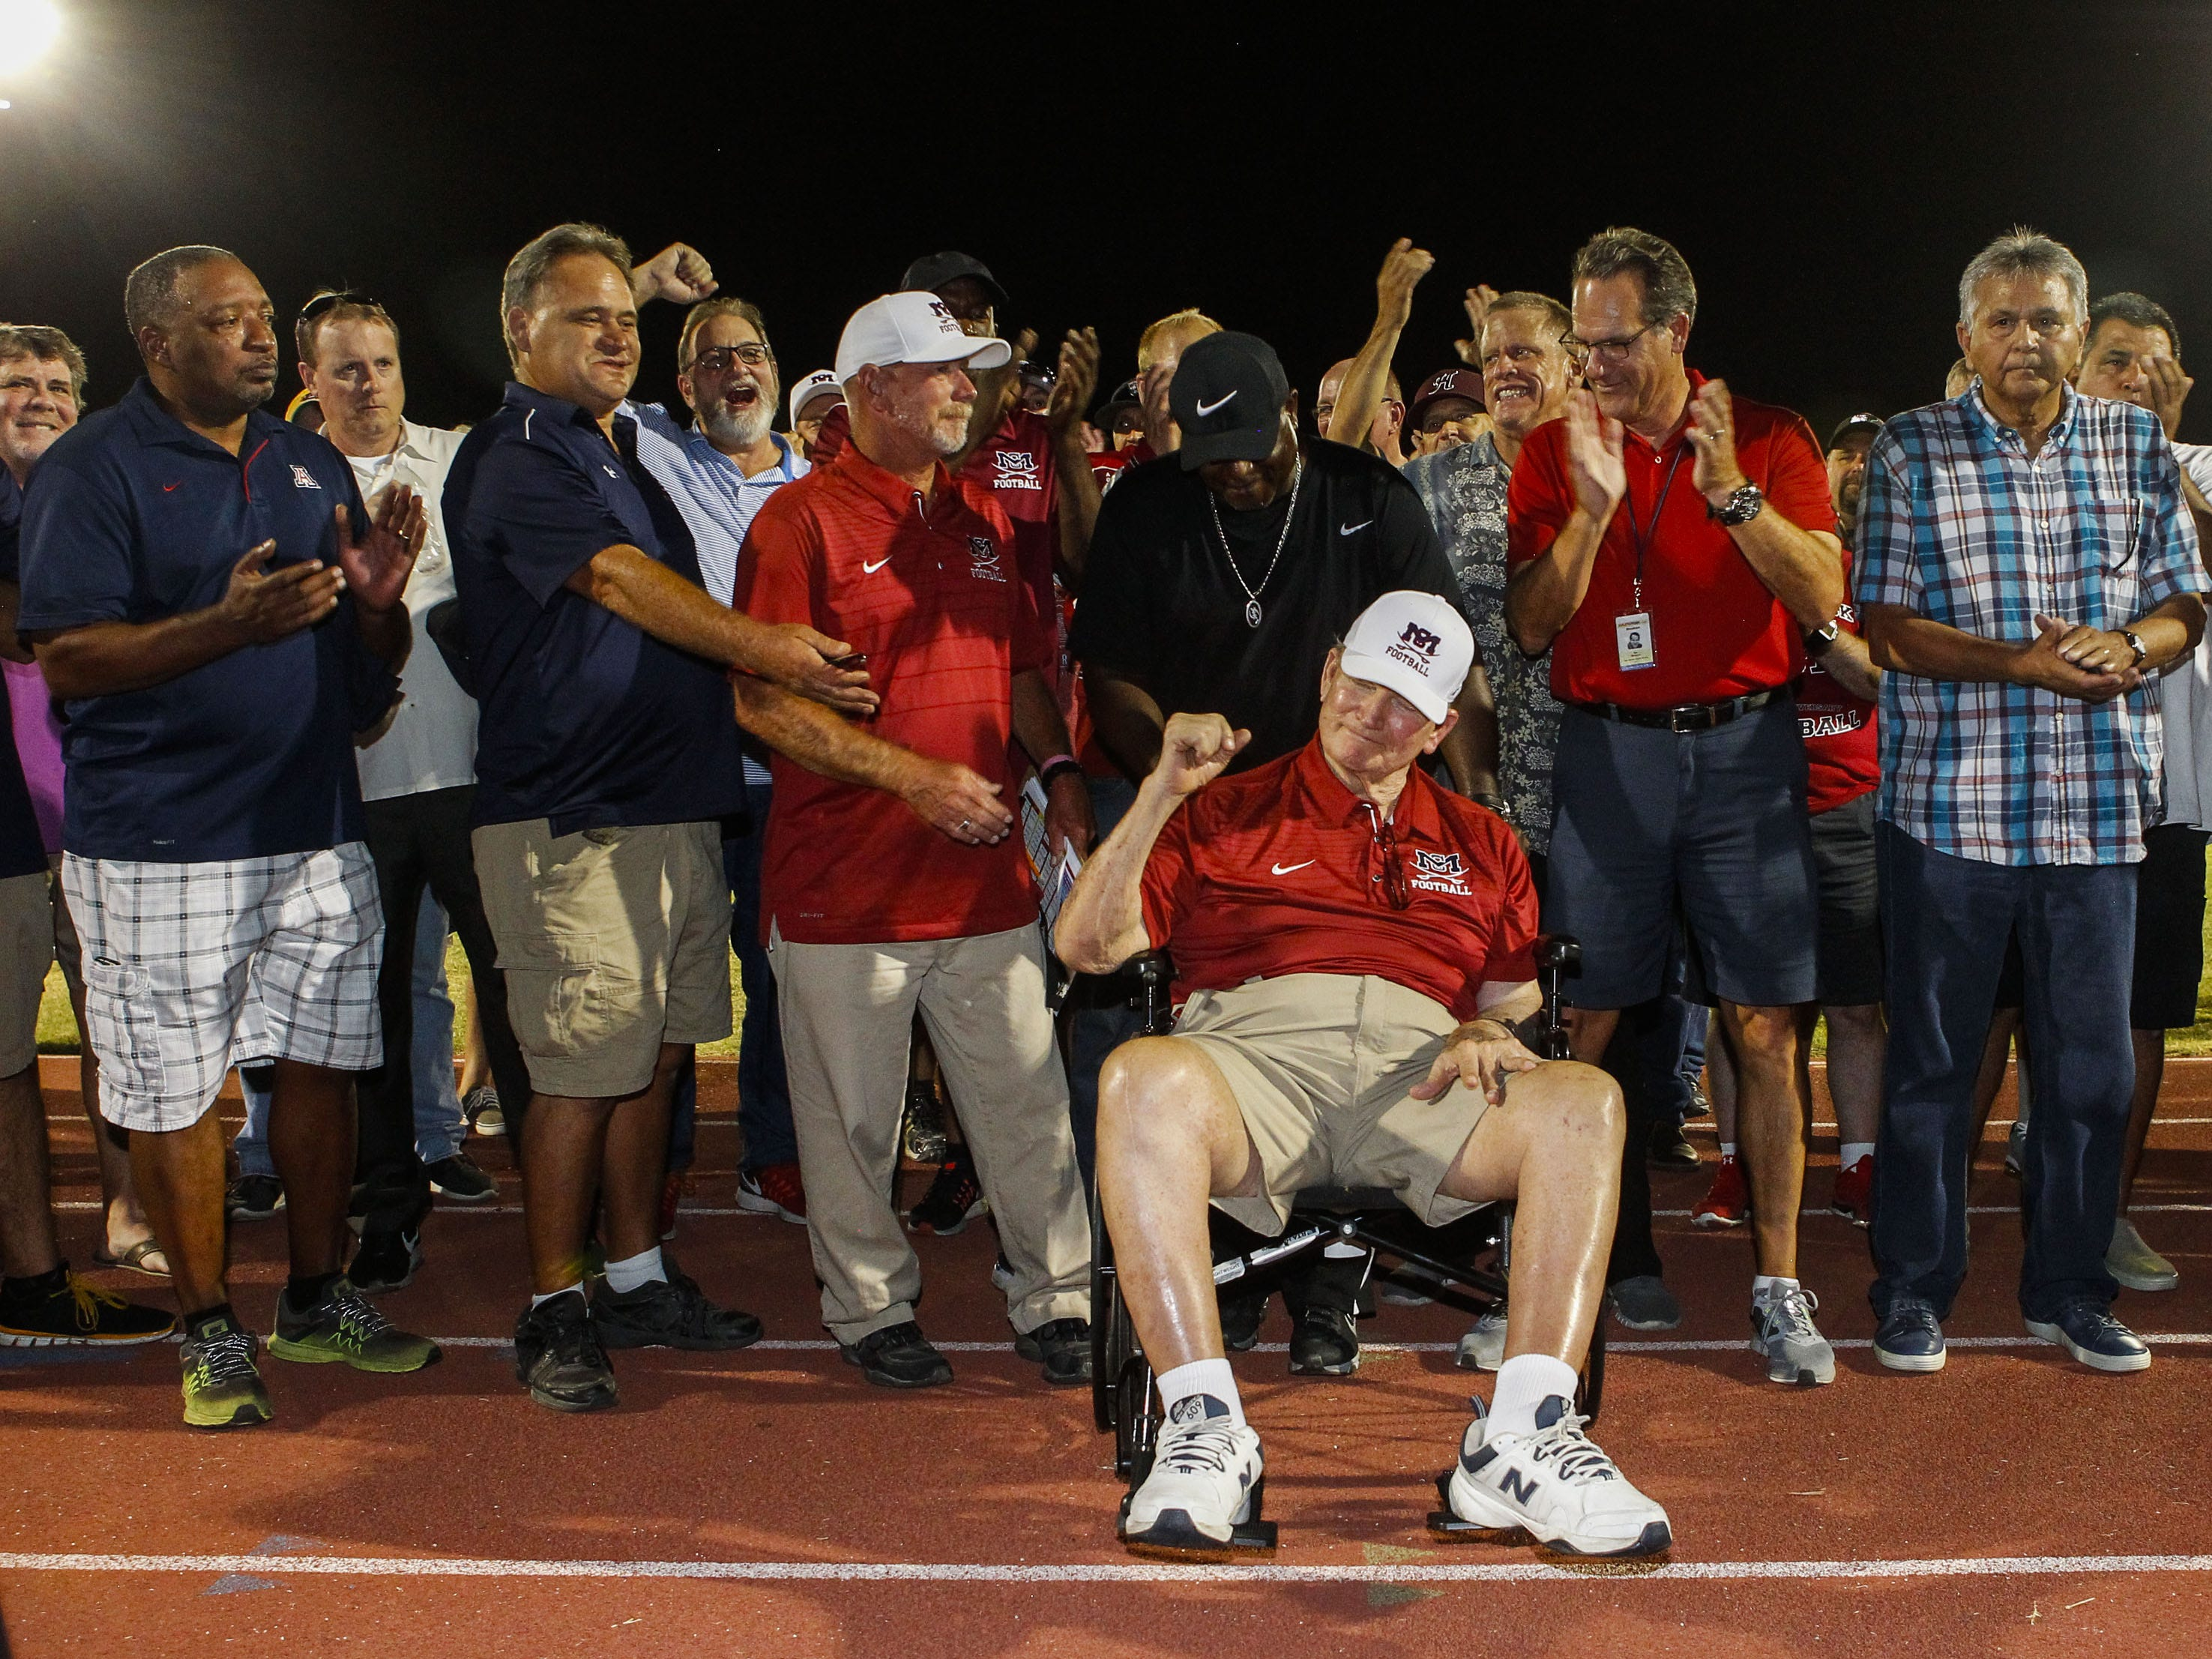 Surrounded by former student/athletes McClintock High School's original Head Coach Karl Kiefer is honored during halftime of the Chargers game with Central in Tempe Friday, Sept. 7, 2018. #azhsfb